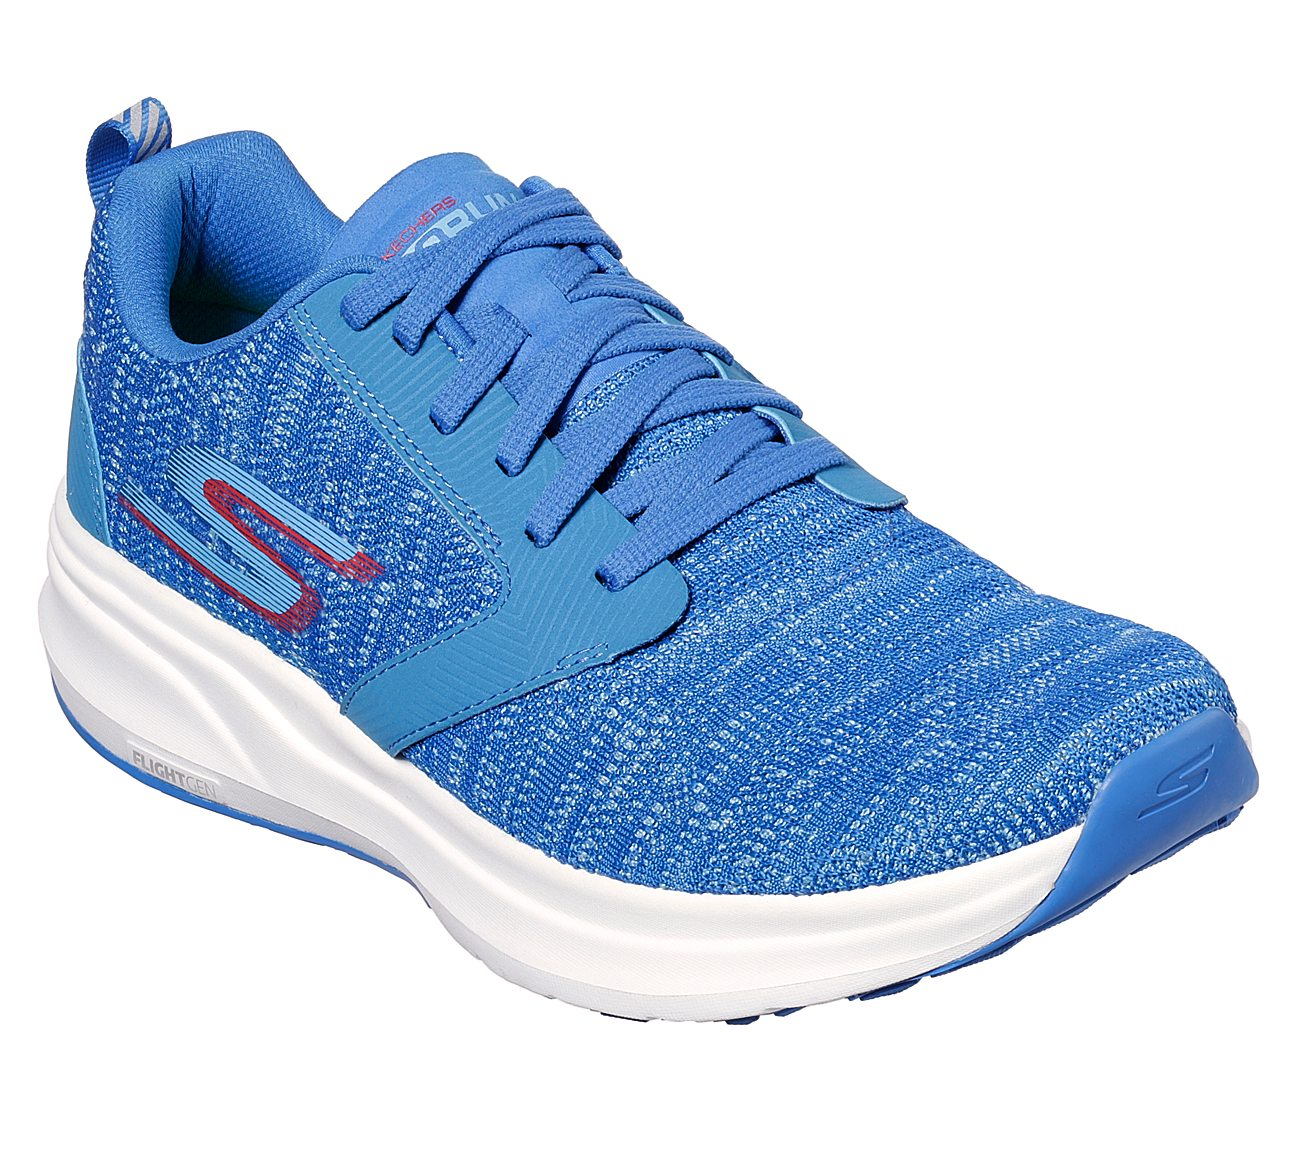 36fef1df44b7 Buy SKECHERS Skechers GOrun Ride 7 Skechers Performance Shoes only ...